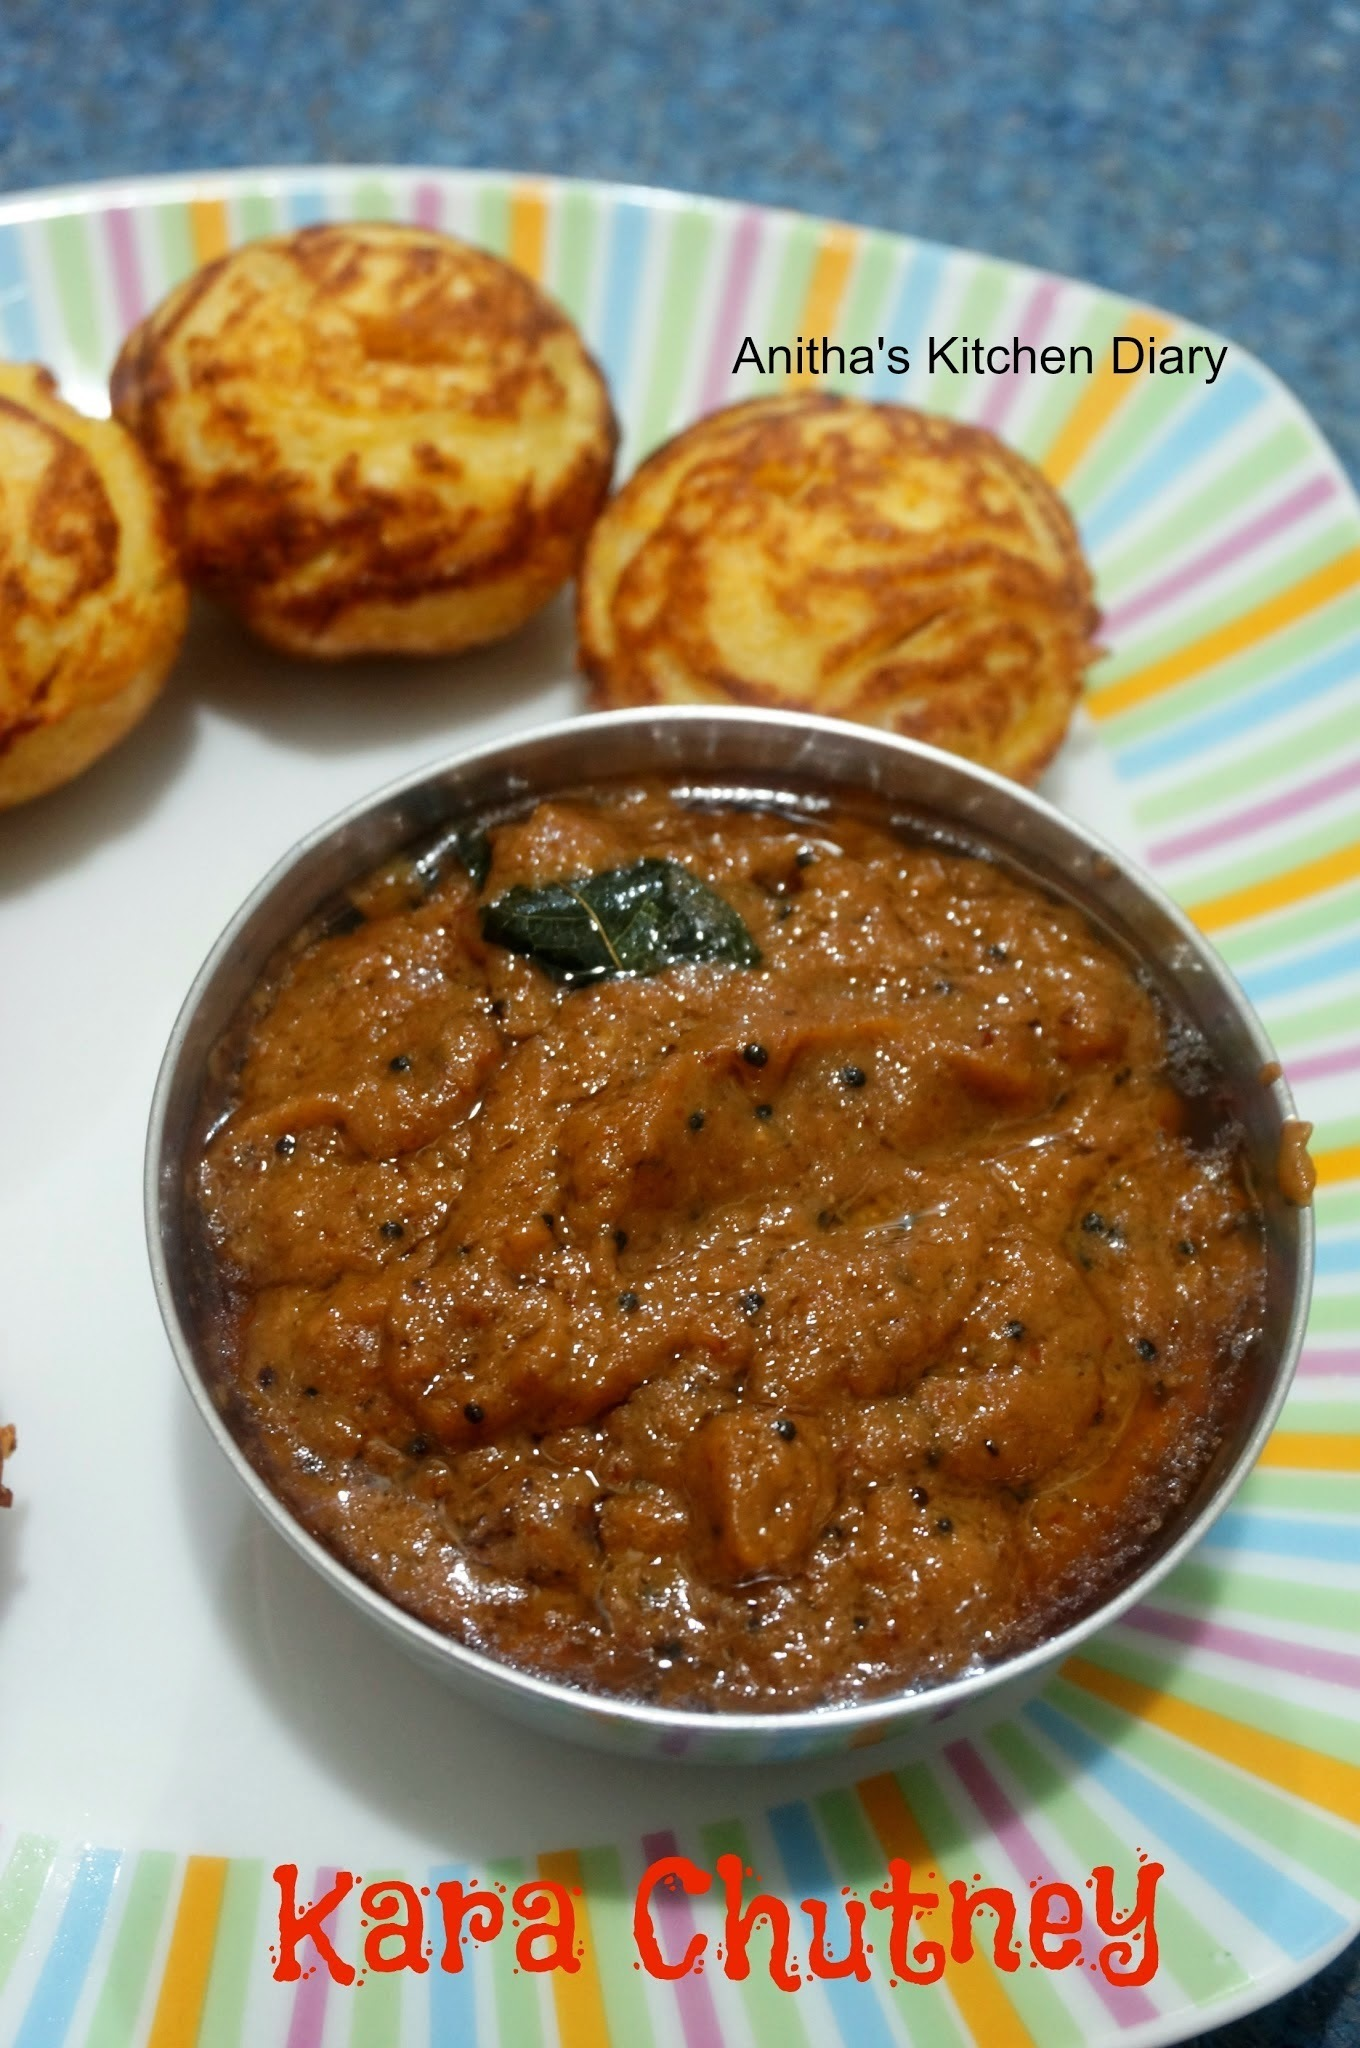 Kara Chutney | Chilli Garlic Chutney | Side dish for Idli Dosa